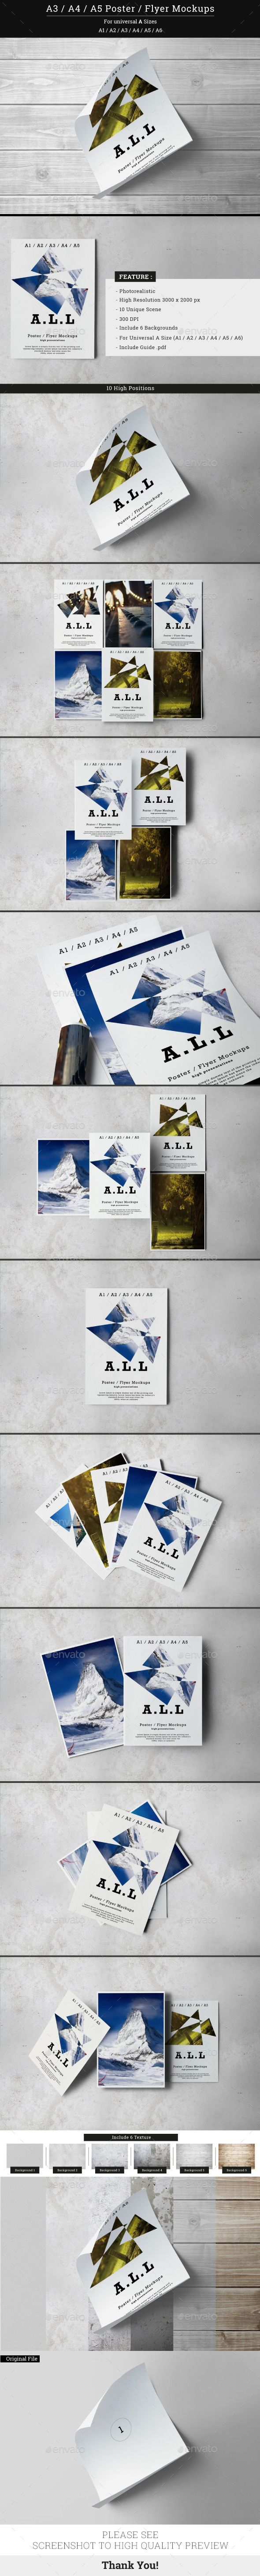 A3 / A4 / A5 Poster / Flyer Mockups - Posters Print